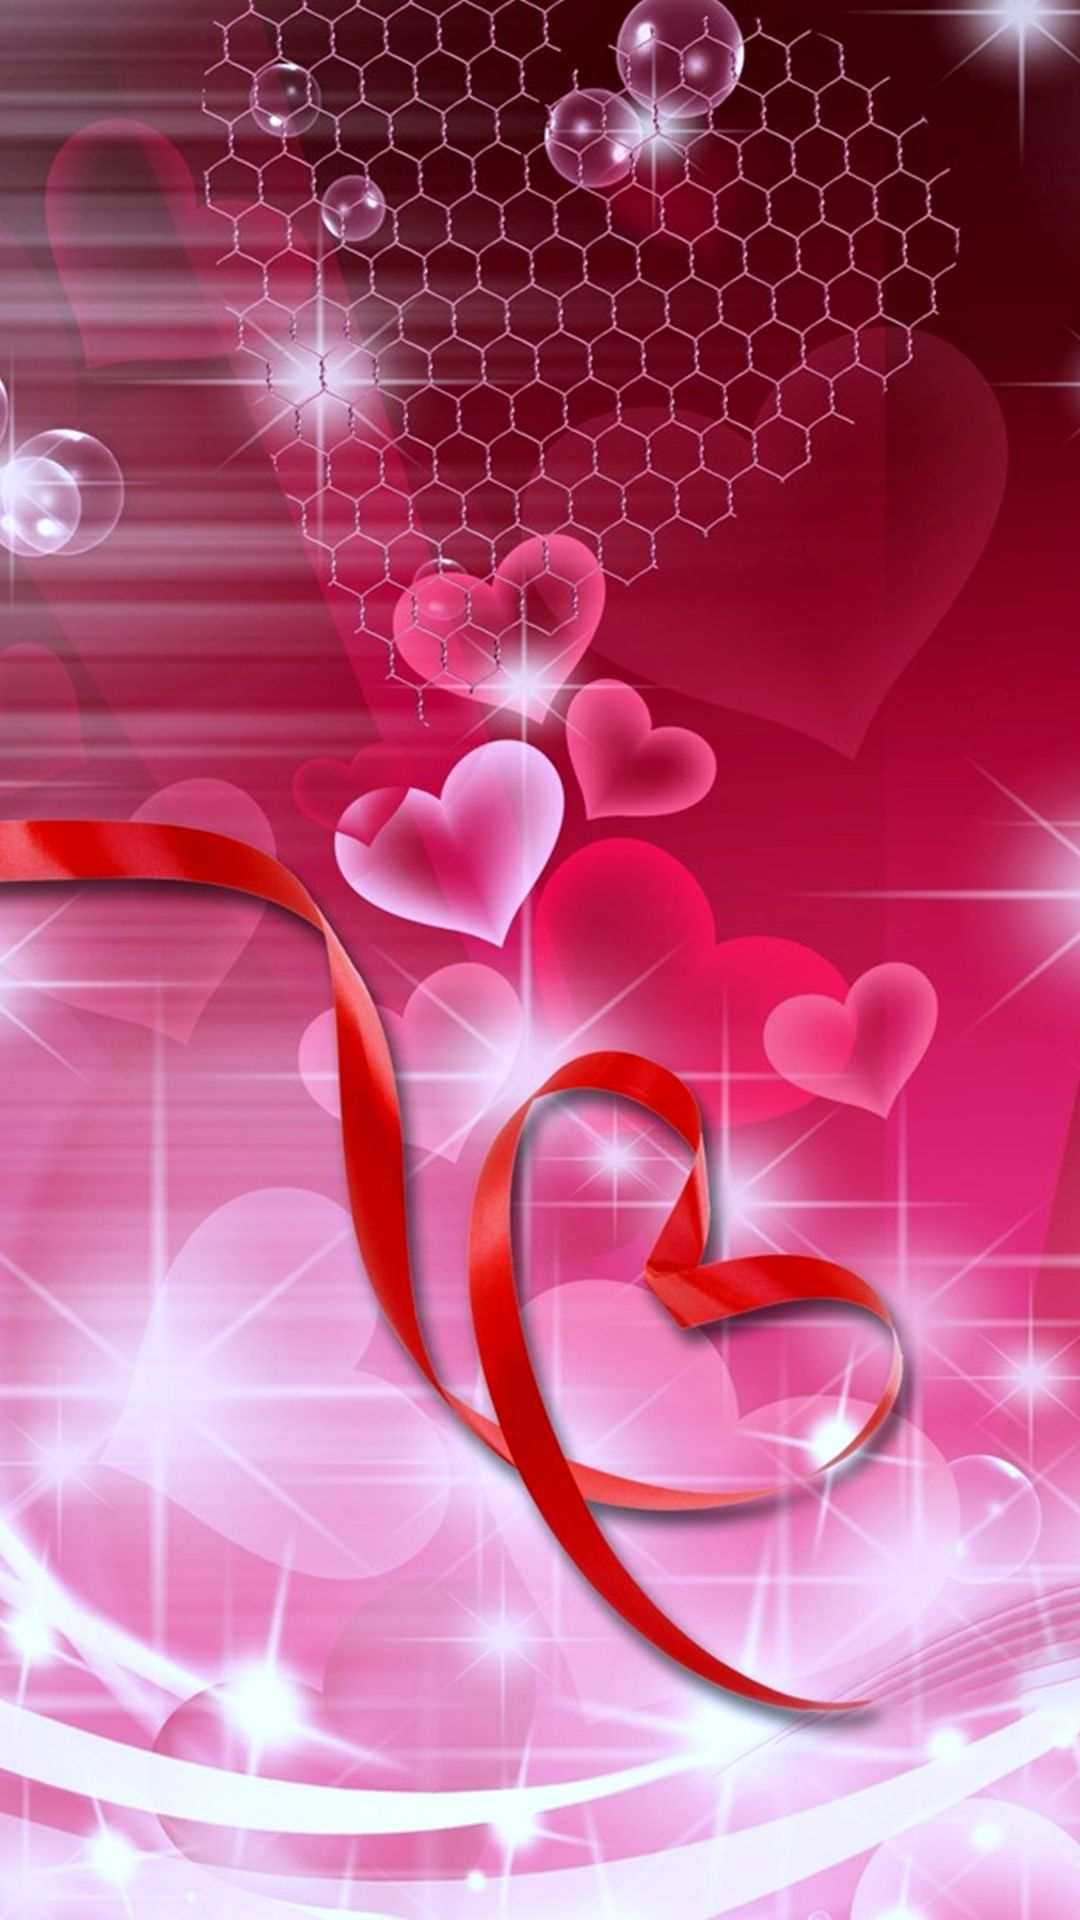 Love Wallpapers Valentines Day Wallpapers Love Hearts Page Love Wallpaper For Mobile Love Wallpaper Love Backgrounds Background love wallpaper hd full size